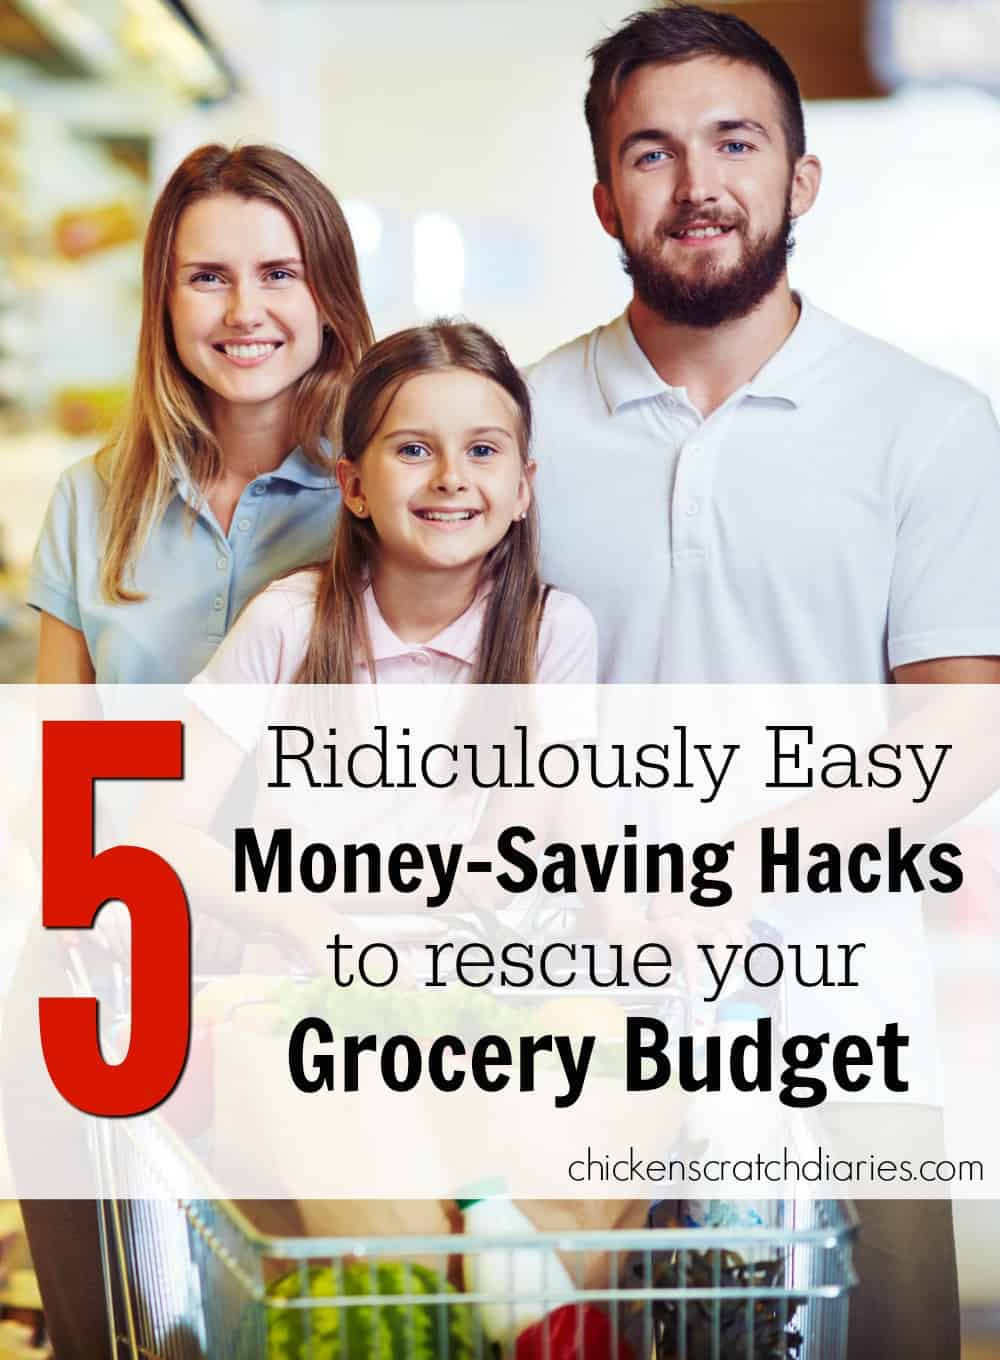 Simple grocery savings tips that anyone can implement to save money on groceries - NO coupons required! #GroceryShopping #GroceryBudget #Budgeting #FrugalLiving #SavingMoney #OnlineShopping